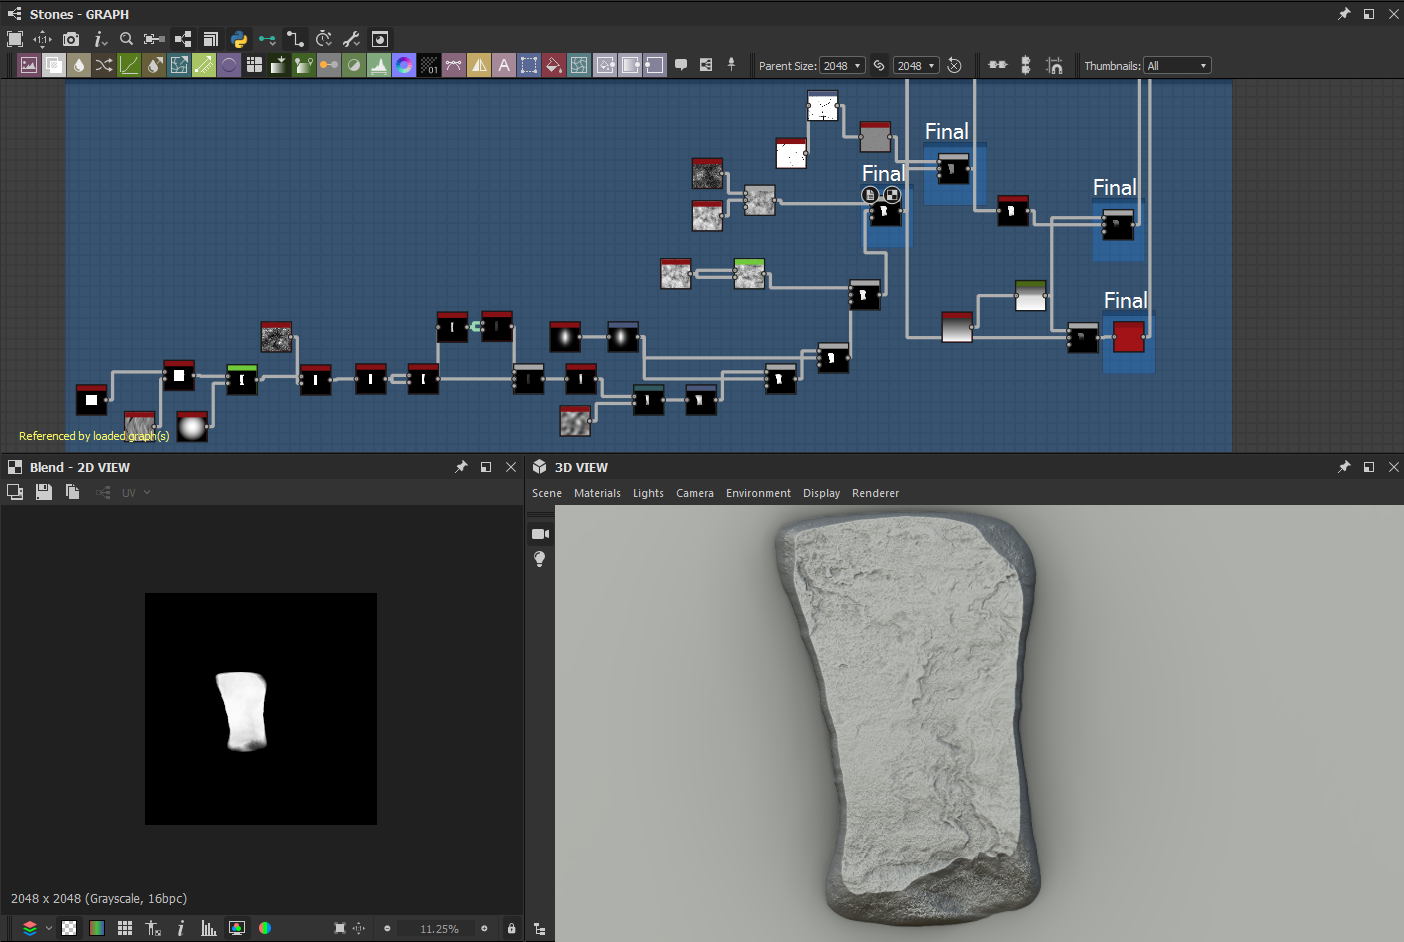 Using Substance Designer graph to construct a procedural rock in the foreground.